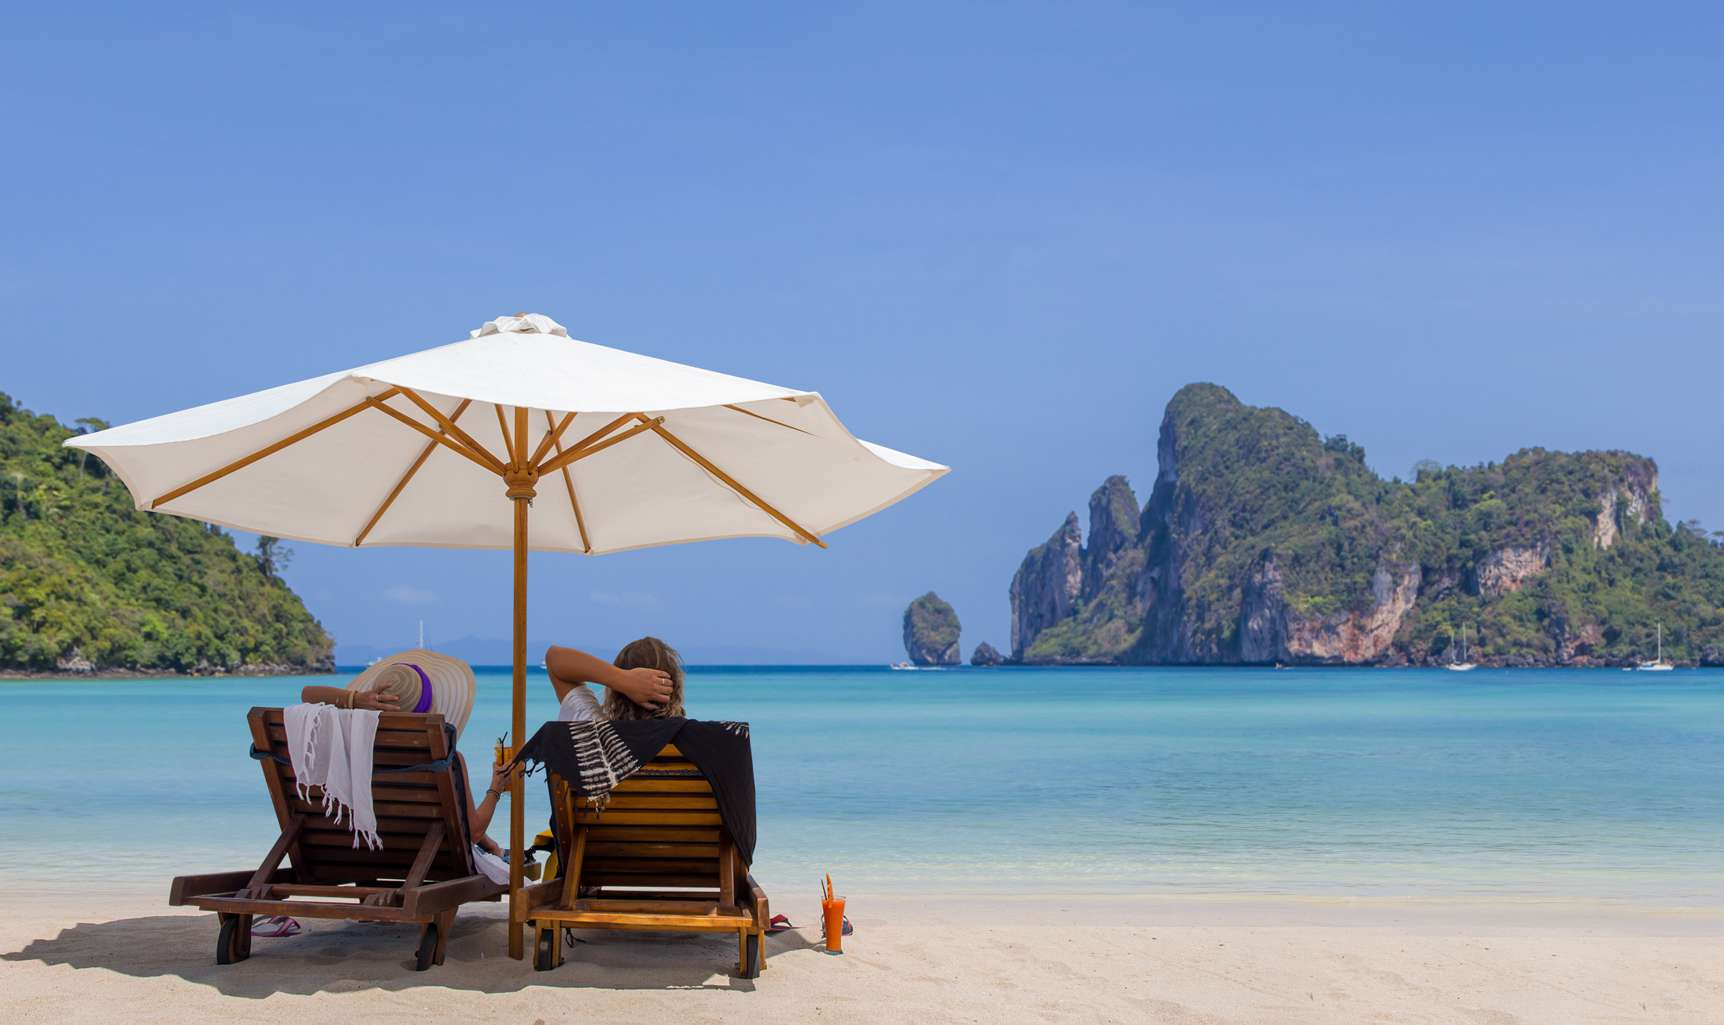 Enjoy a Wide Selection of Hotels and more in your dreamVacation